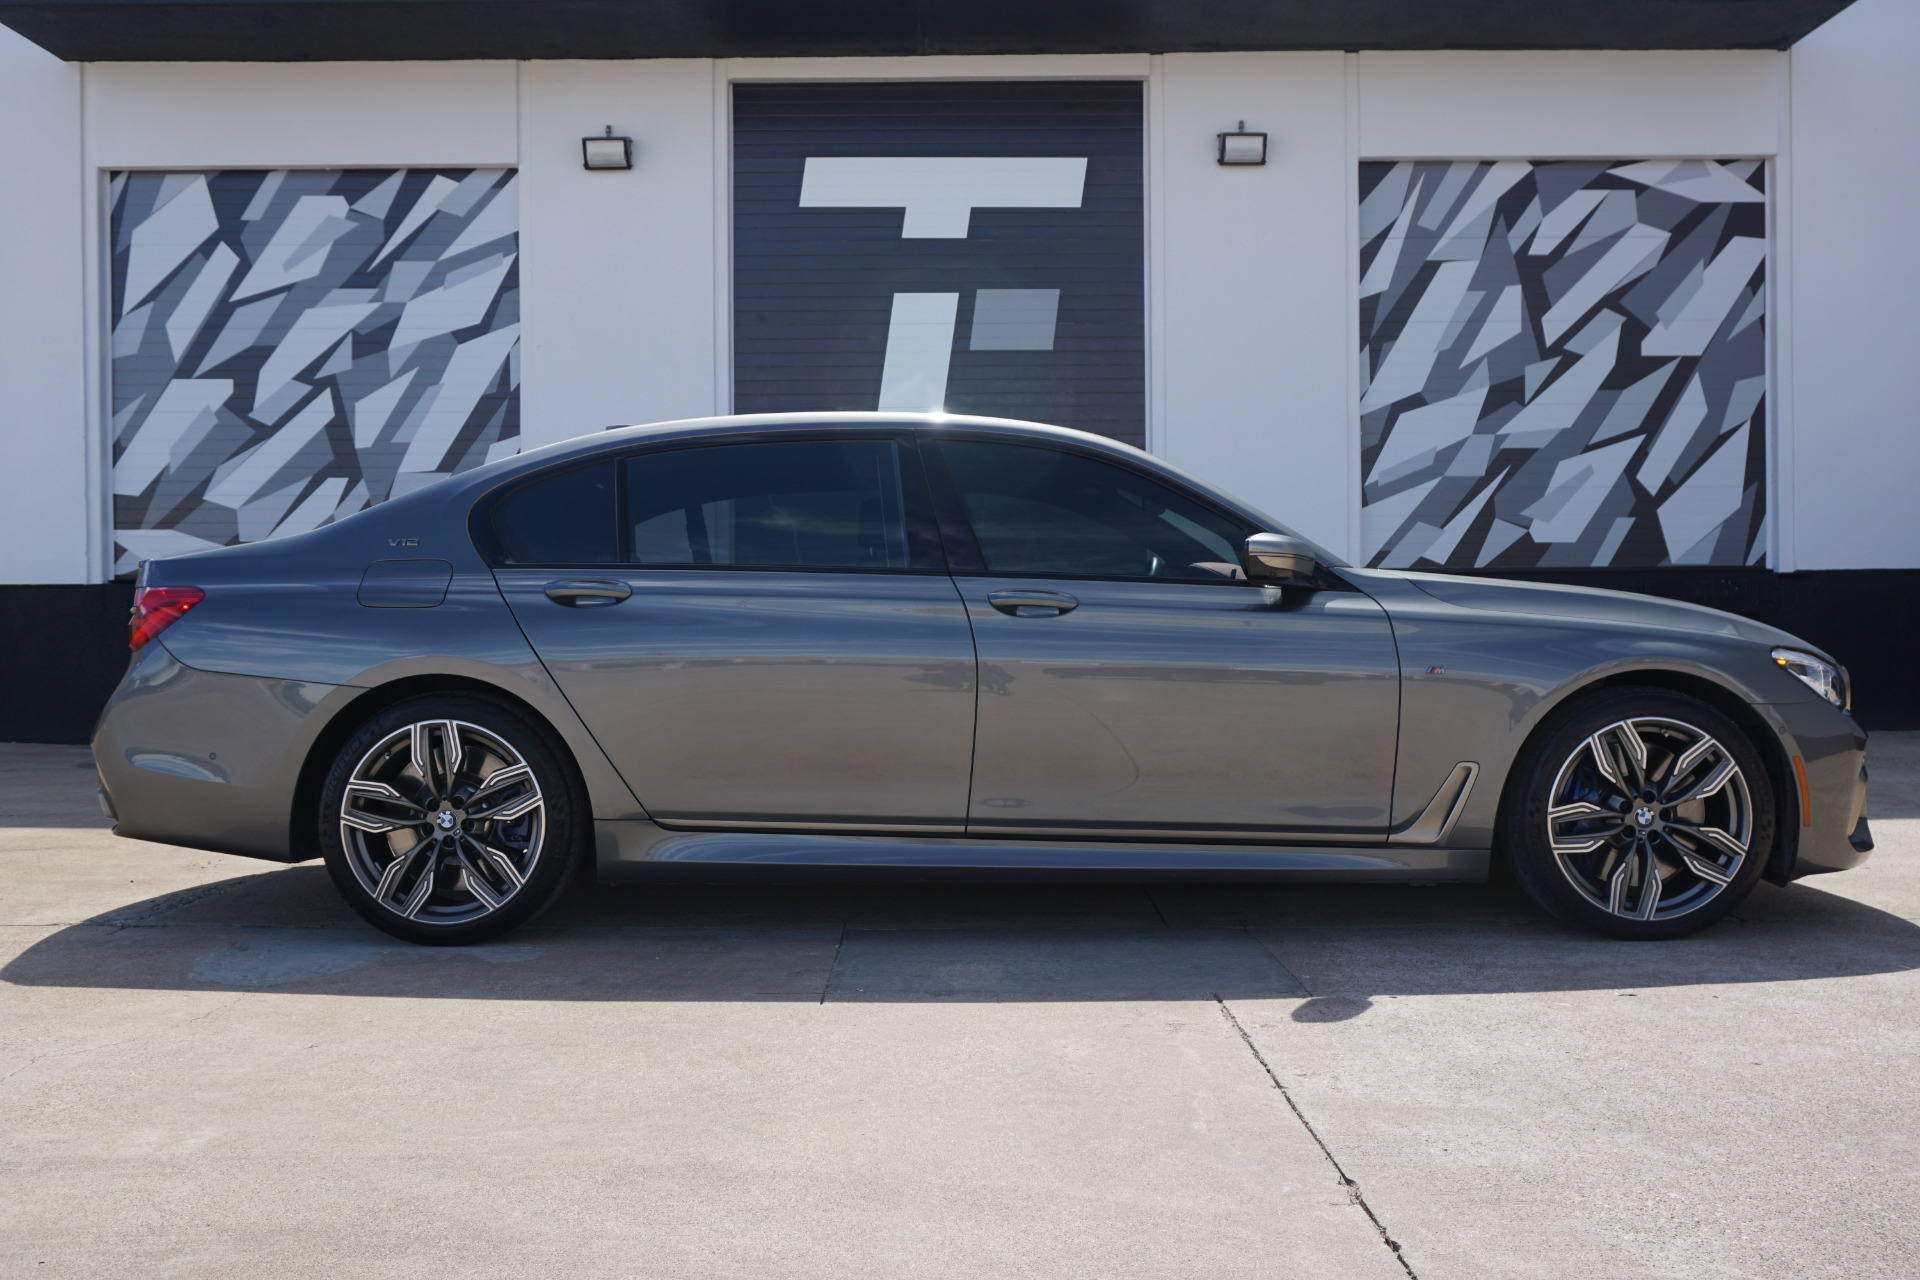 Used 2019 Bmw 7 Series M760i Xdrive For Sale 149 900